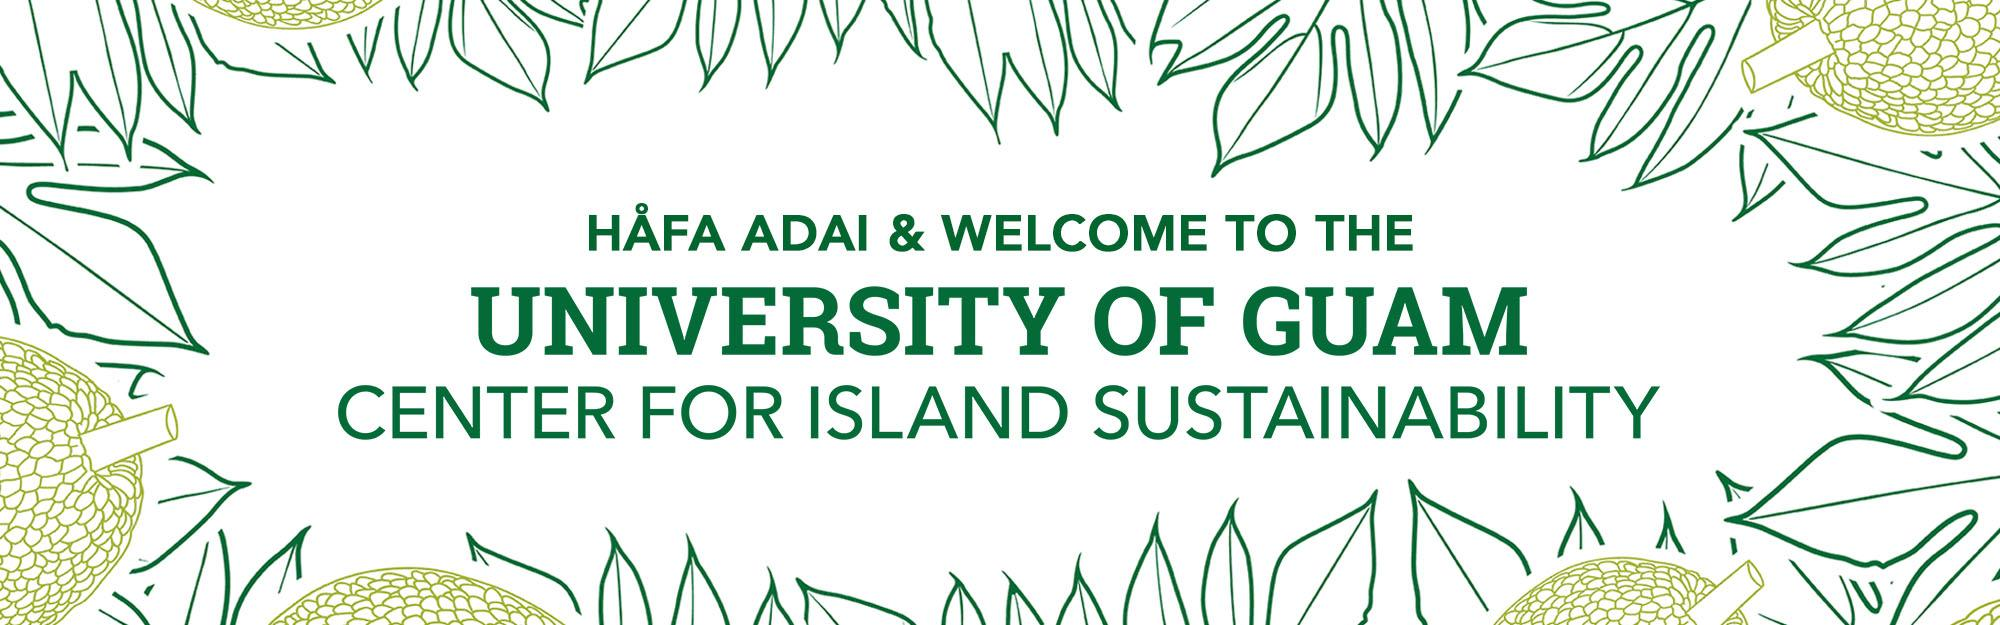 Center for Island Sustainability Banner Iamge